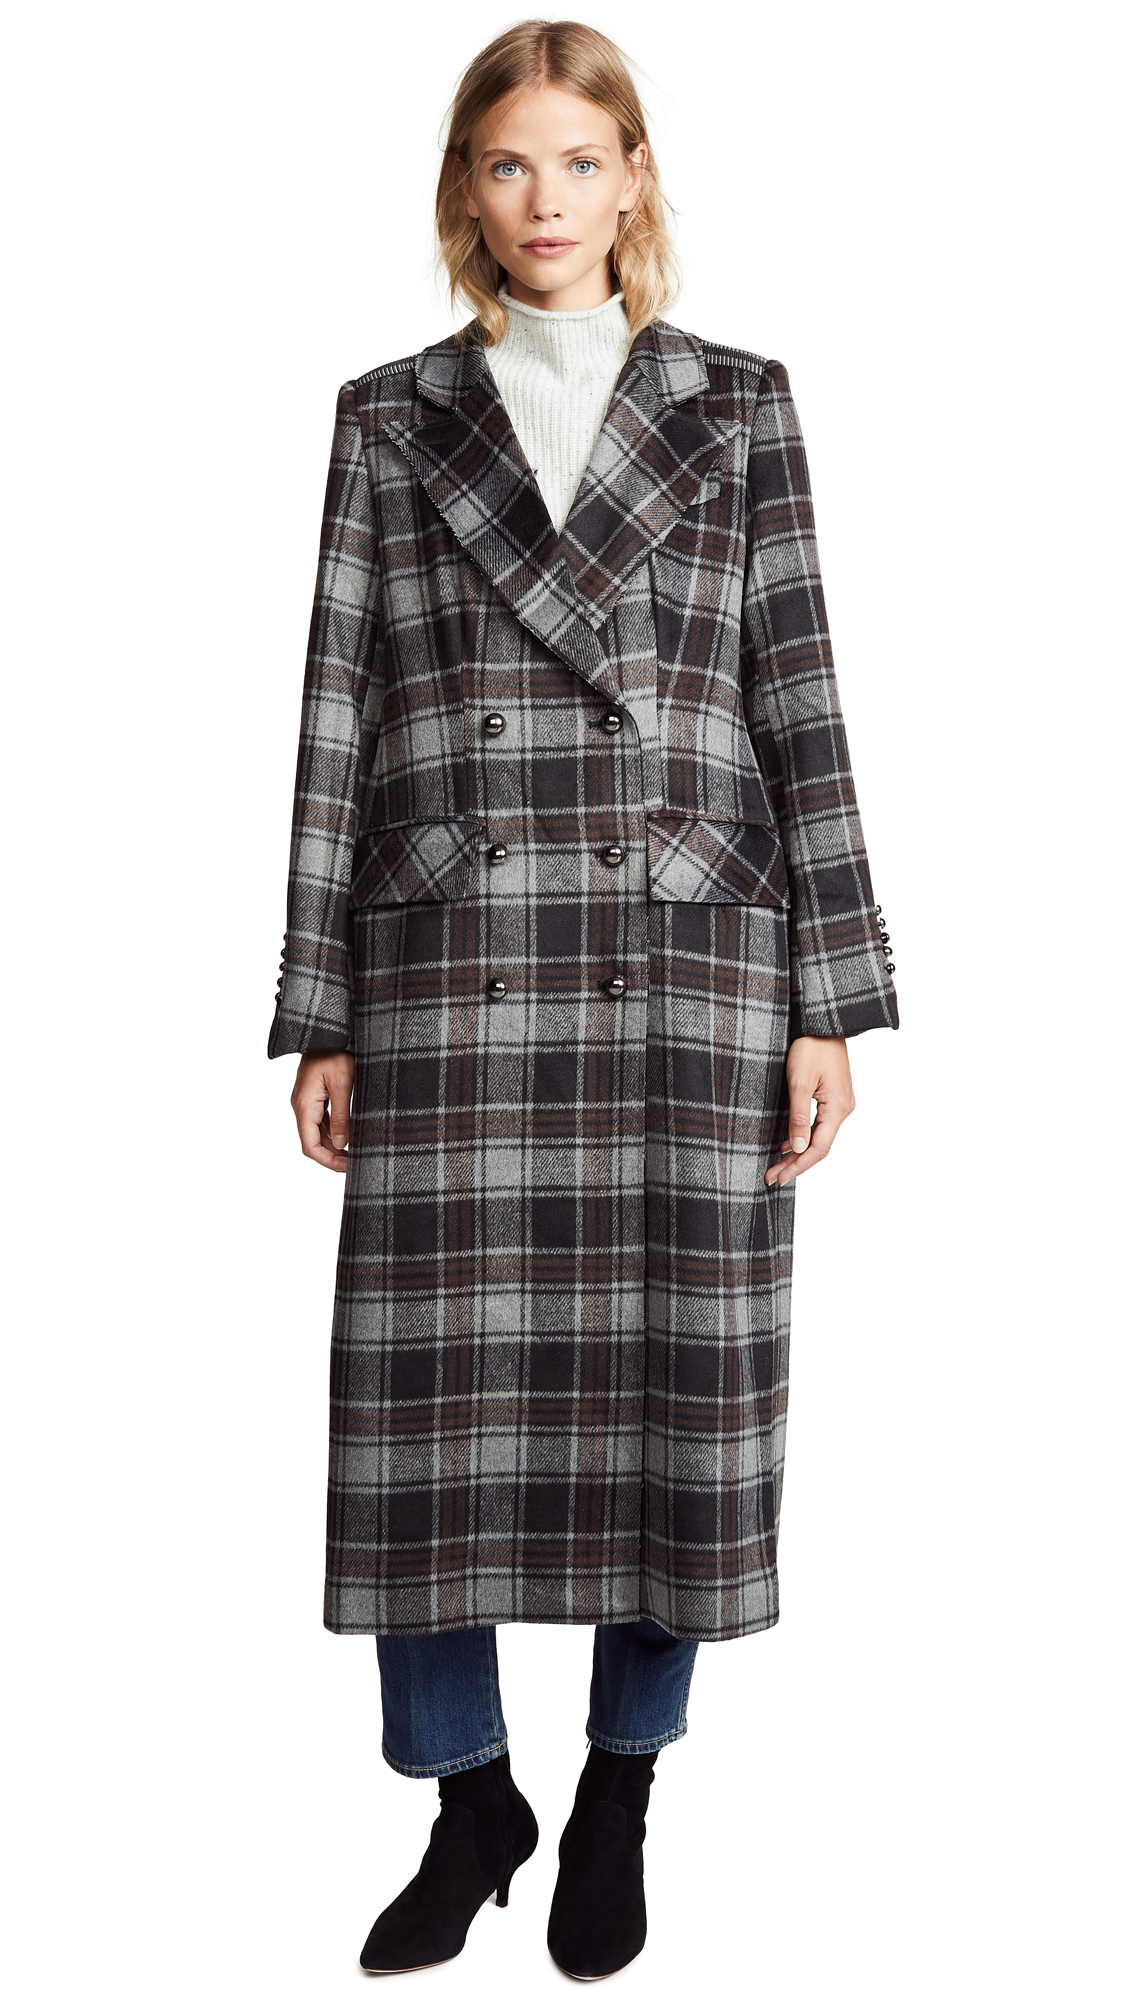 Sosken Gin Plaid Coat